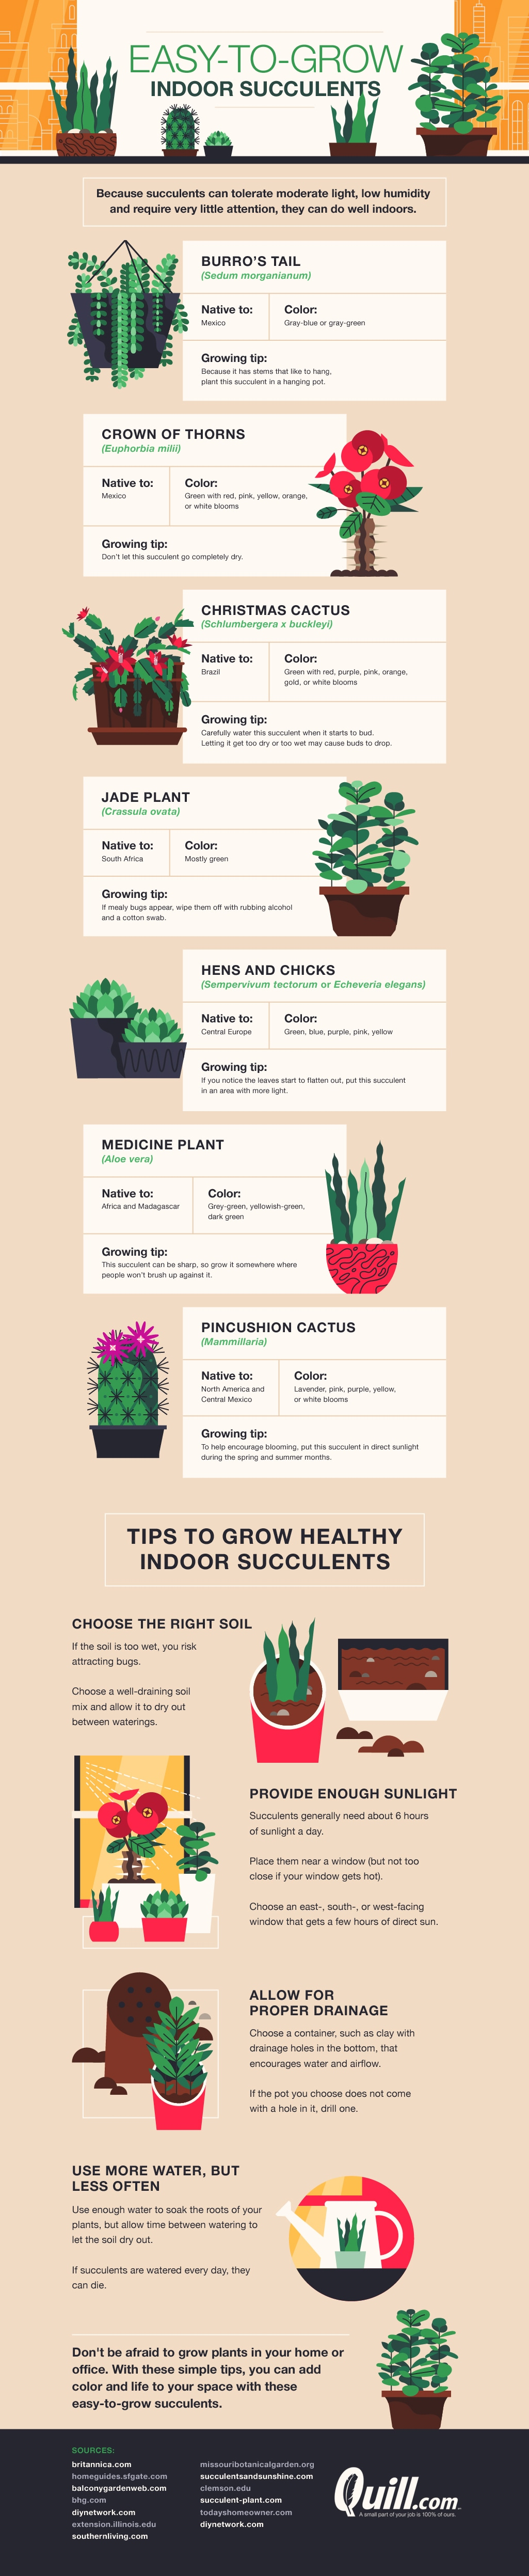 Indoor Succulents: How to Nurture Them - Infographic